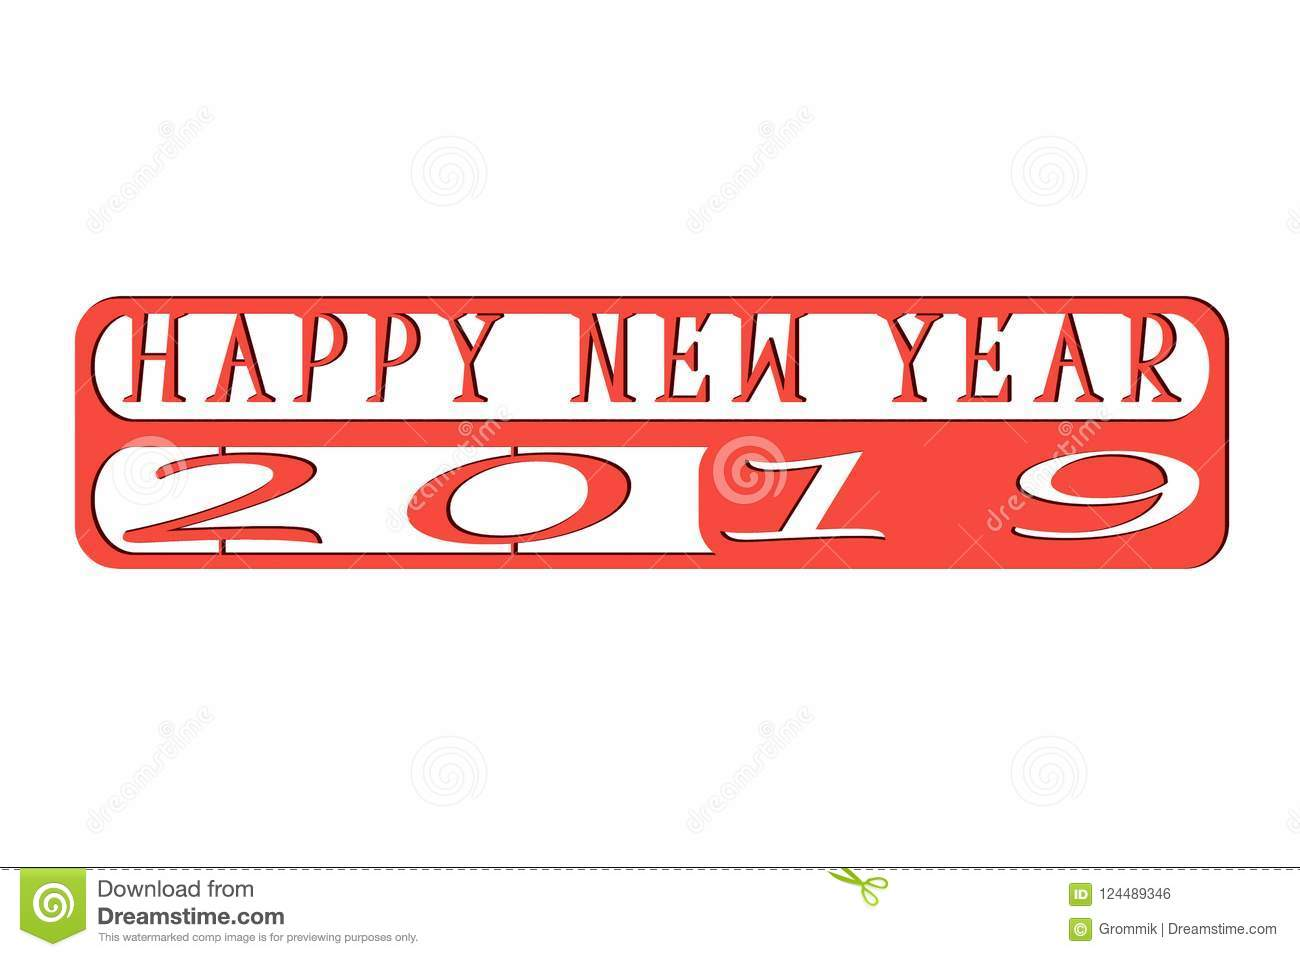 Illustration for new year greetings on white background stock download illustration for new year greetings on white background stock illustration illustration of gradient m4hsunfo